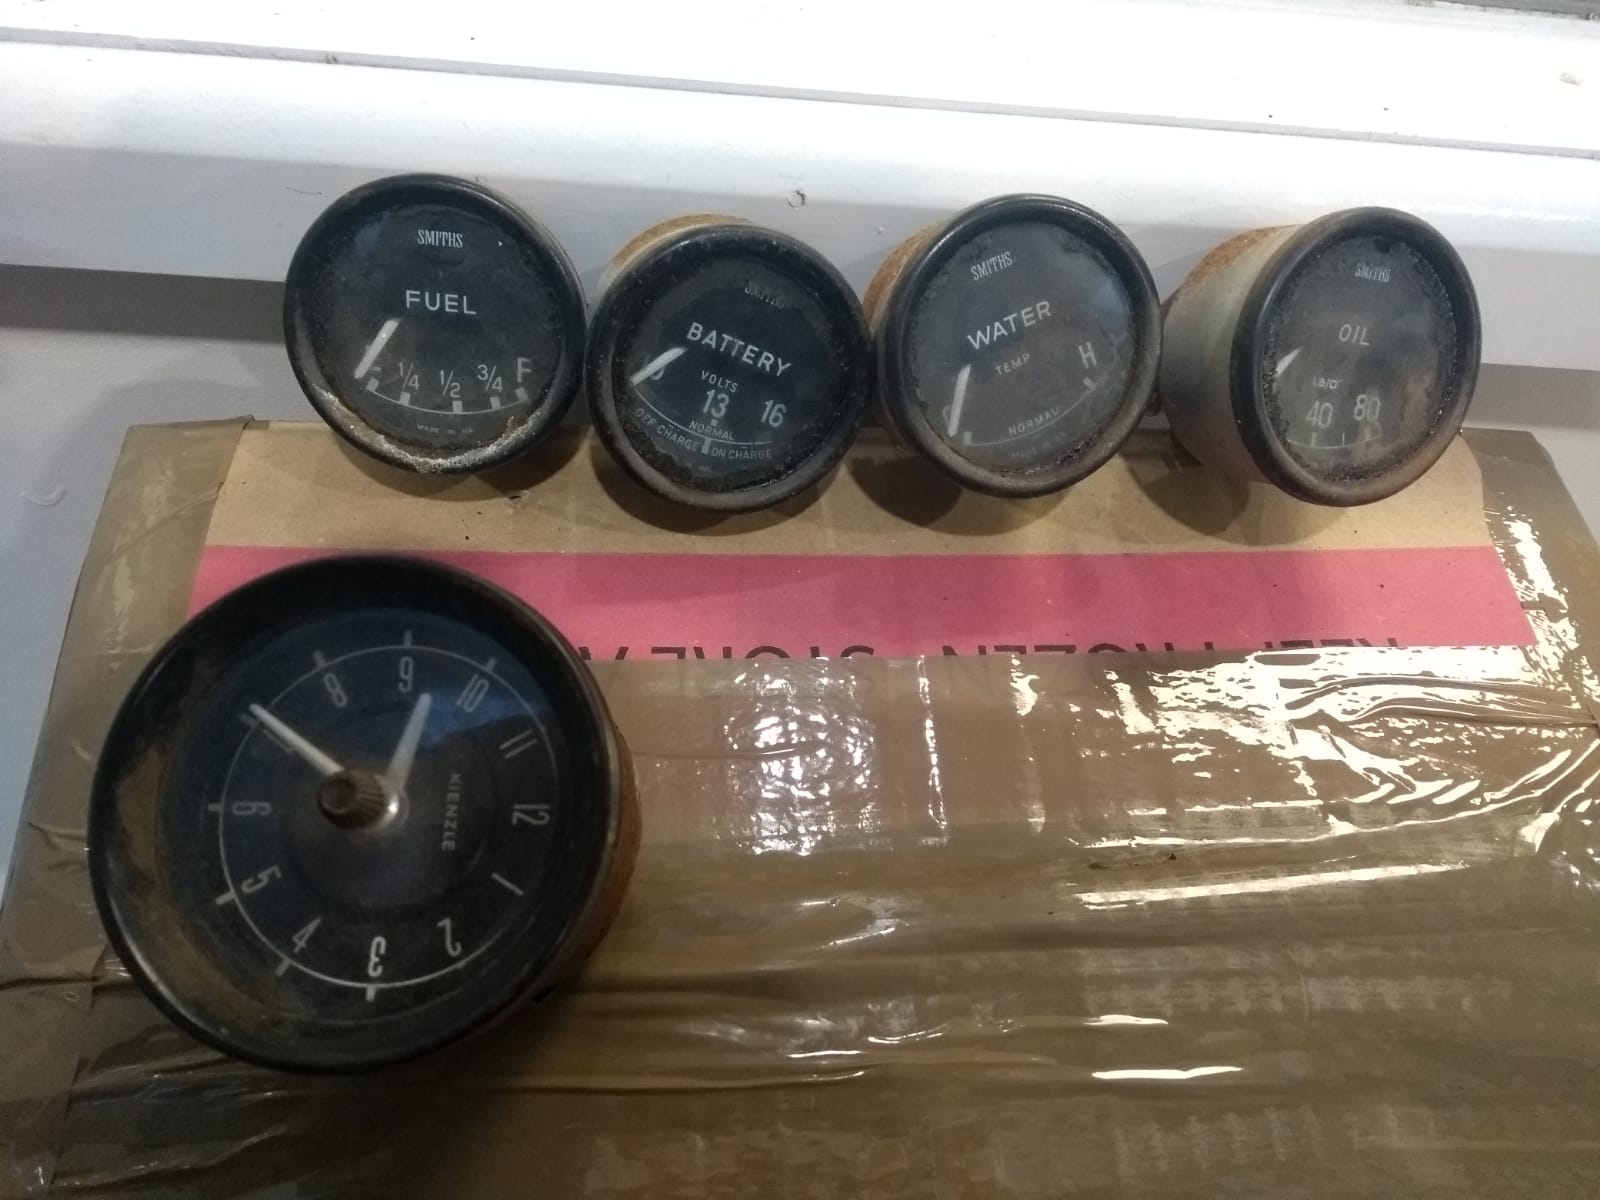 Refurbishing a collection of dials